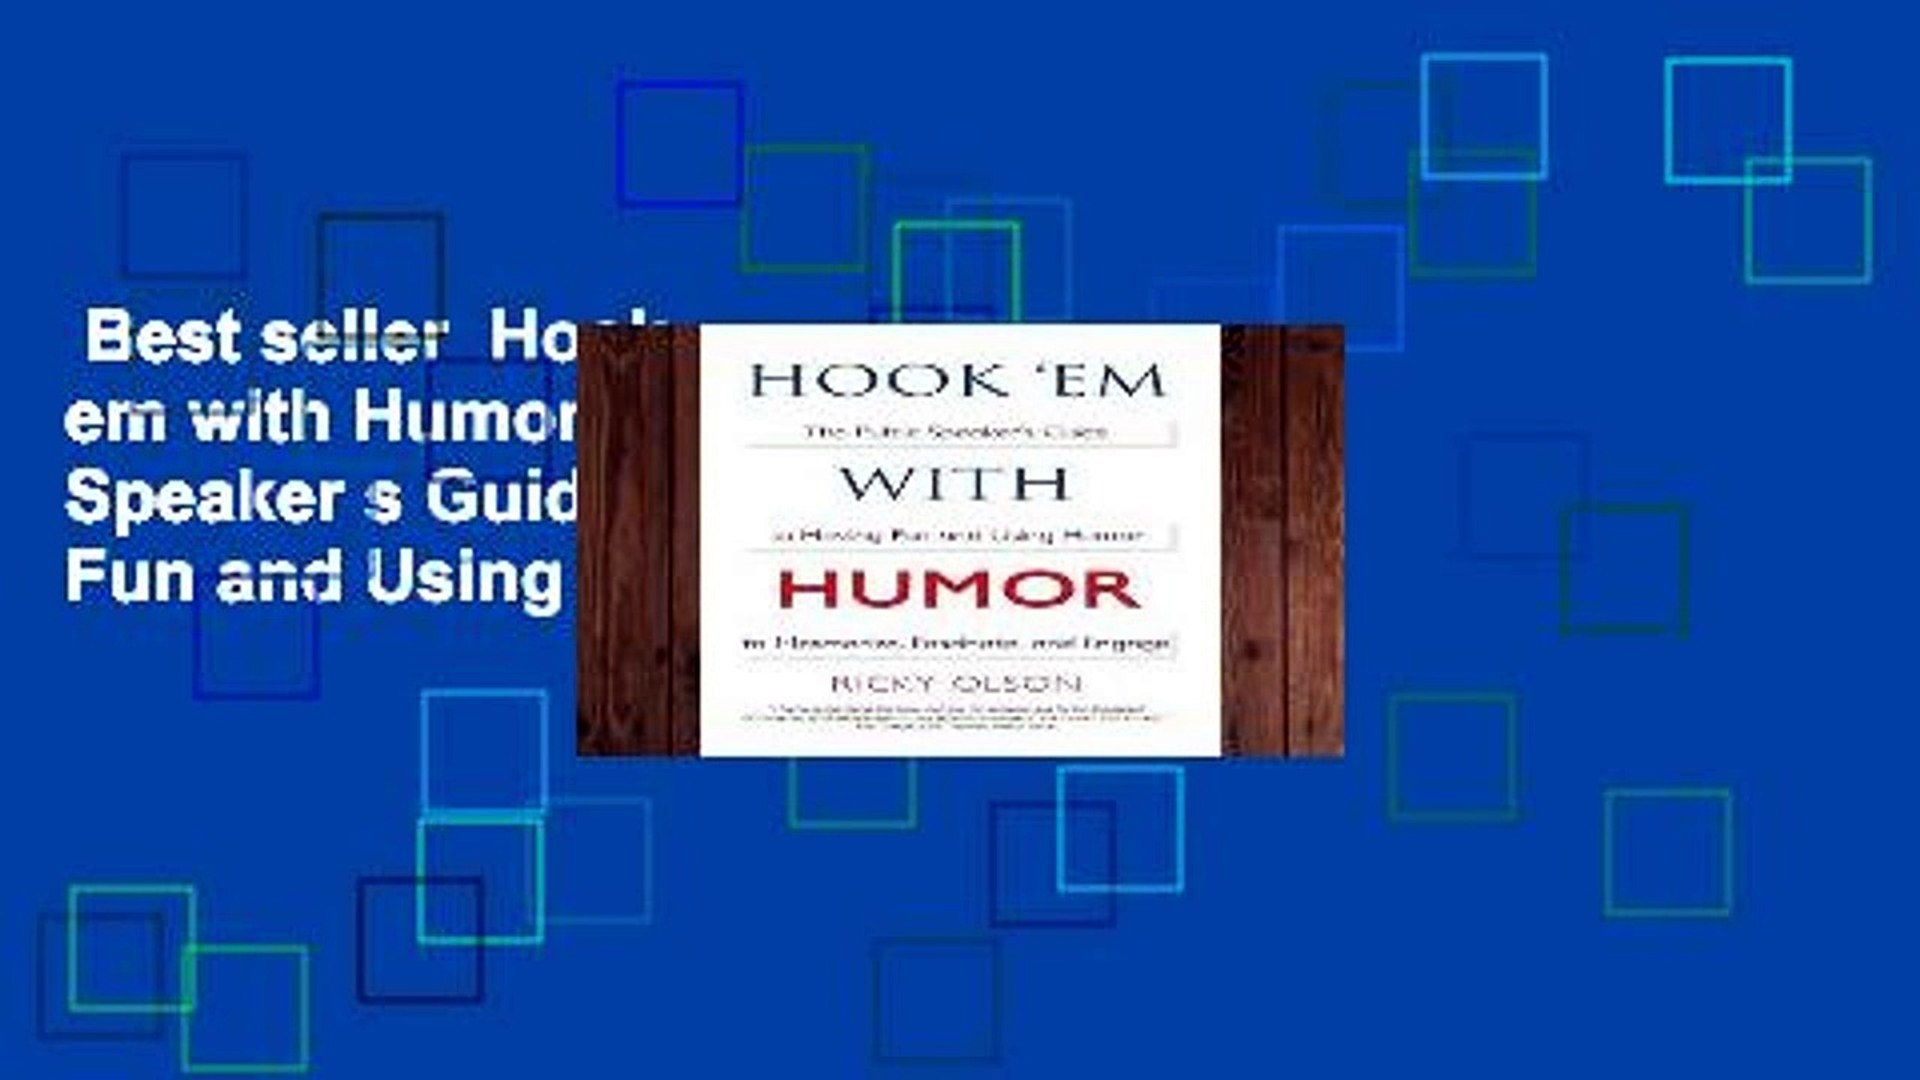 Best seller  Hook  em with Humor: The Public Speaker s Guide to Having Fun and Using Humor to